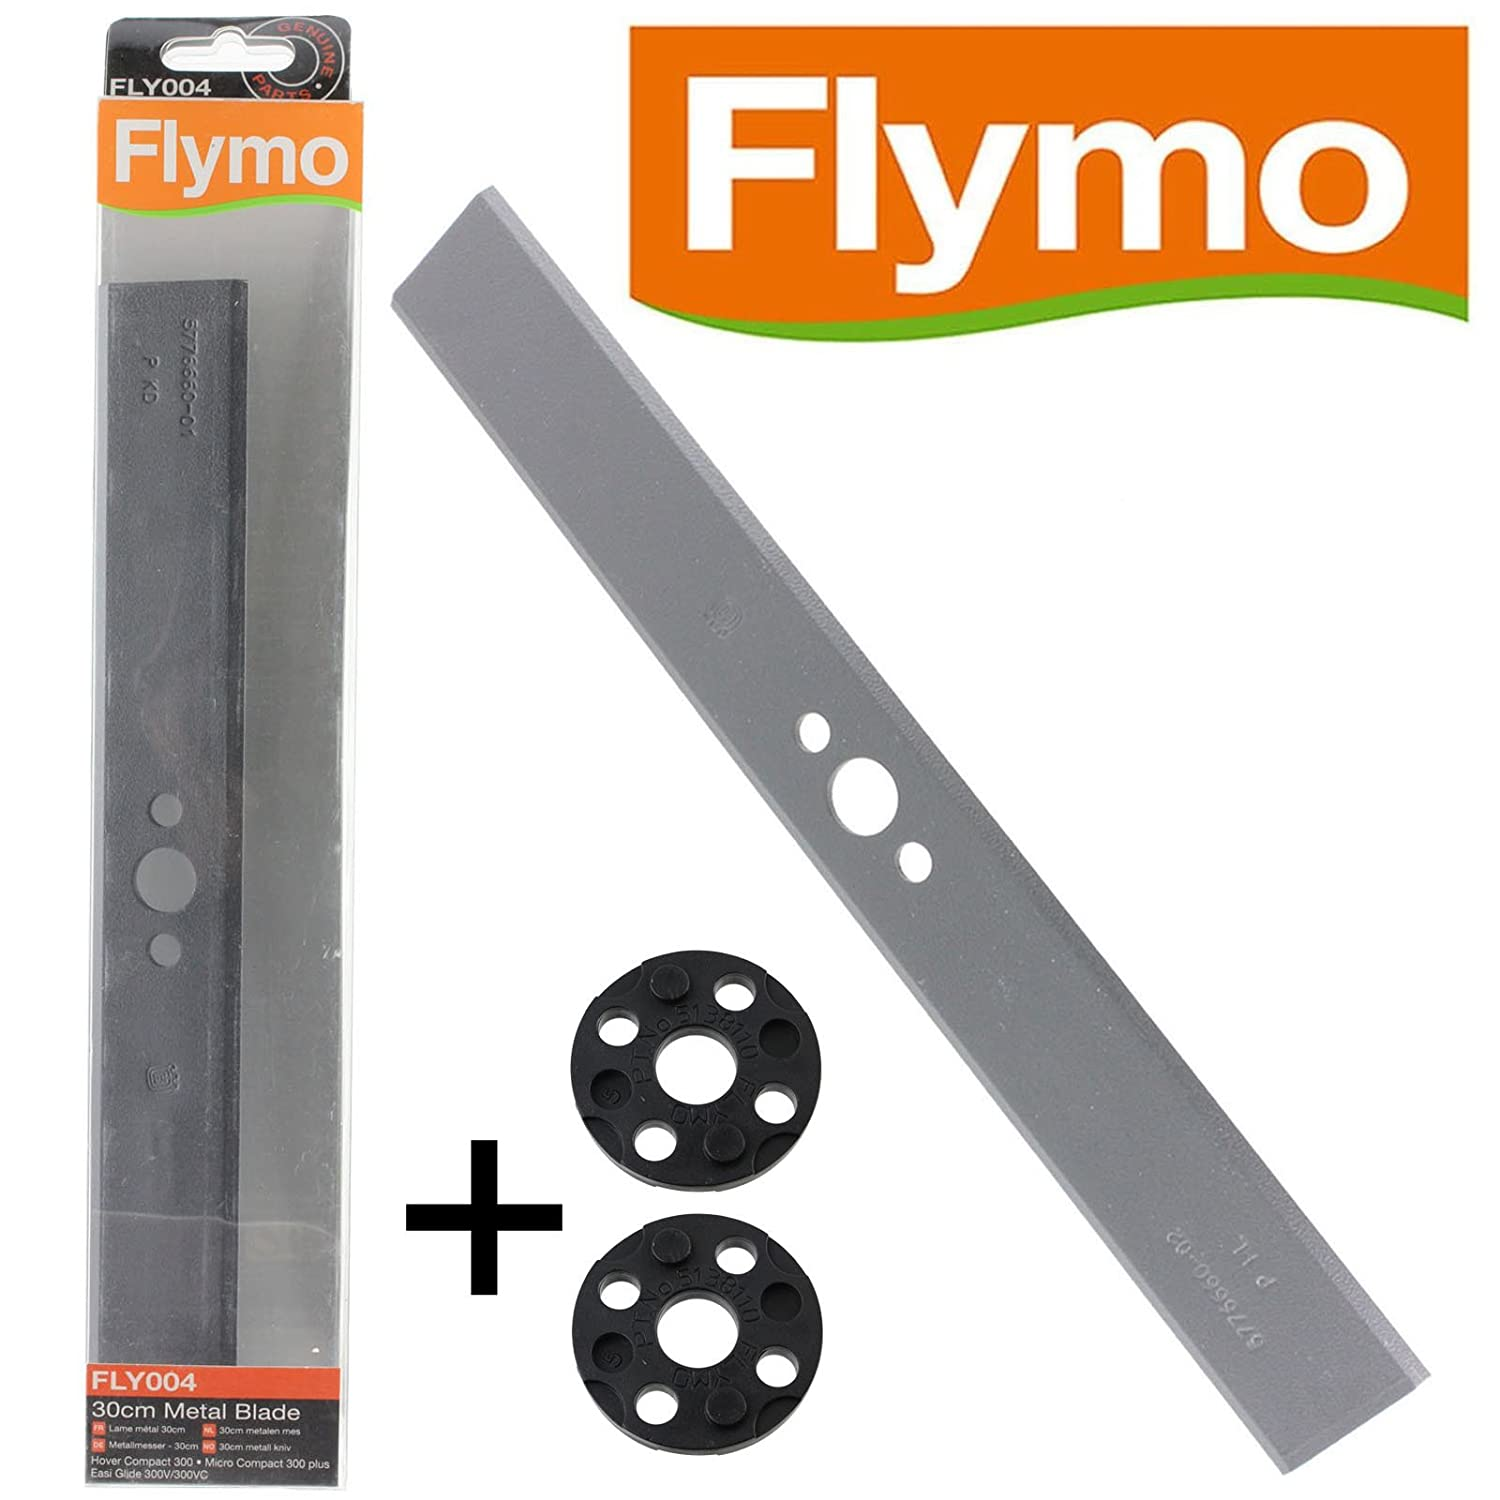 Genuine Flymo Micro Compact 300 Plus Lawnmower Blade & Spacers (30cm, FLY004 / FLY017)